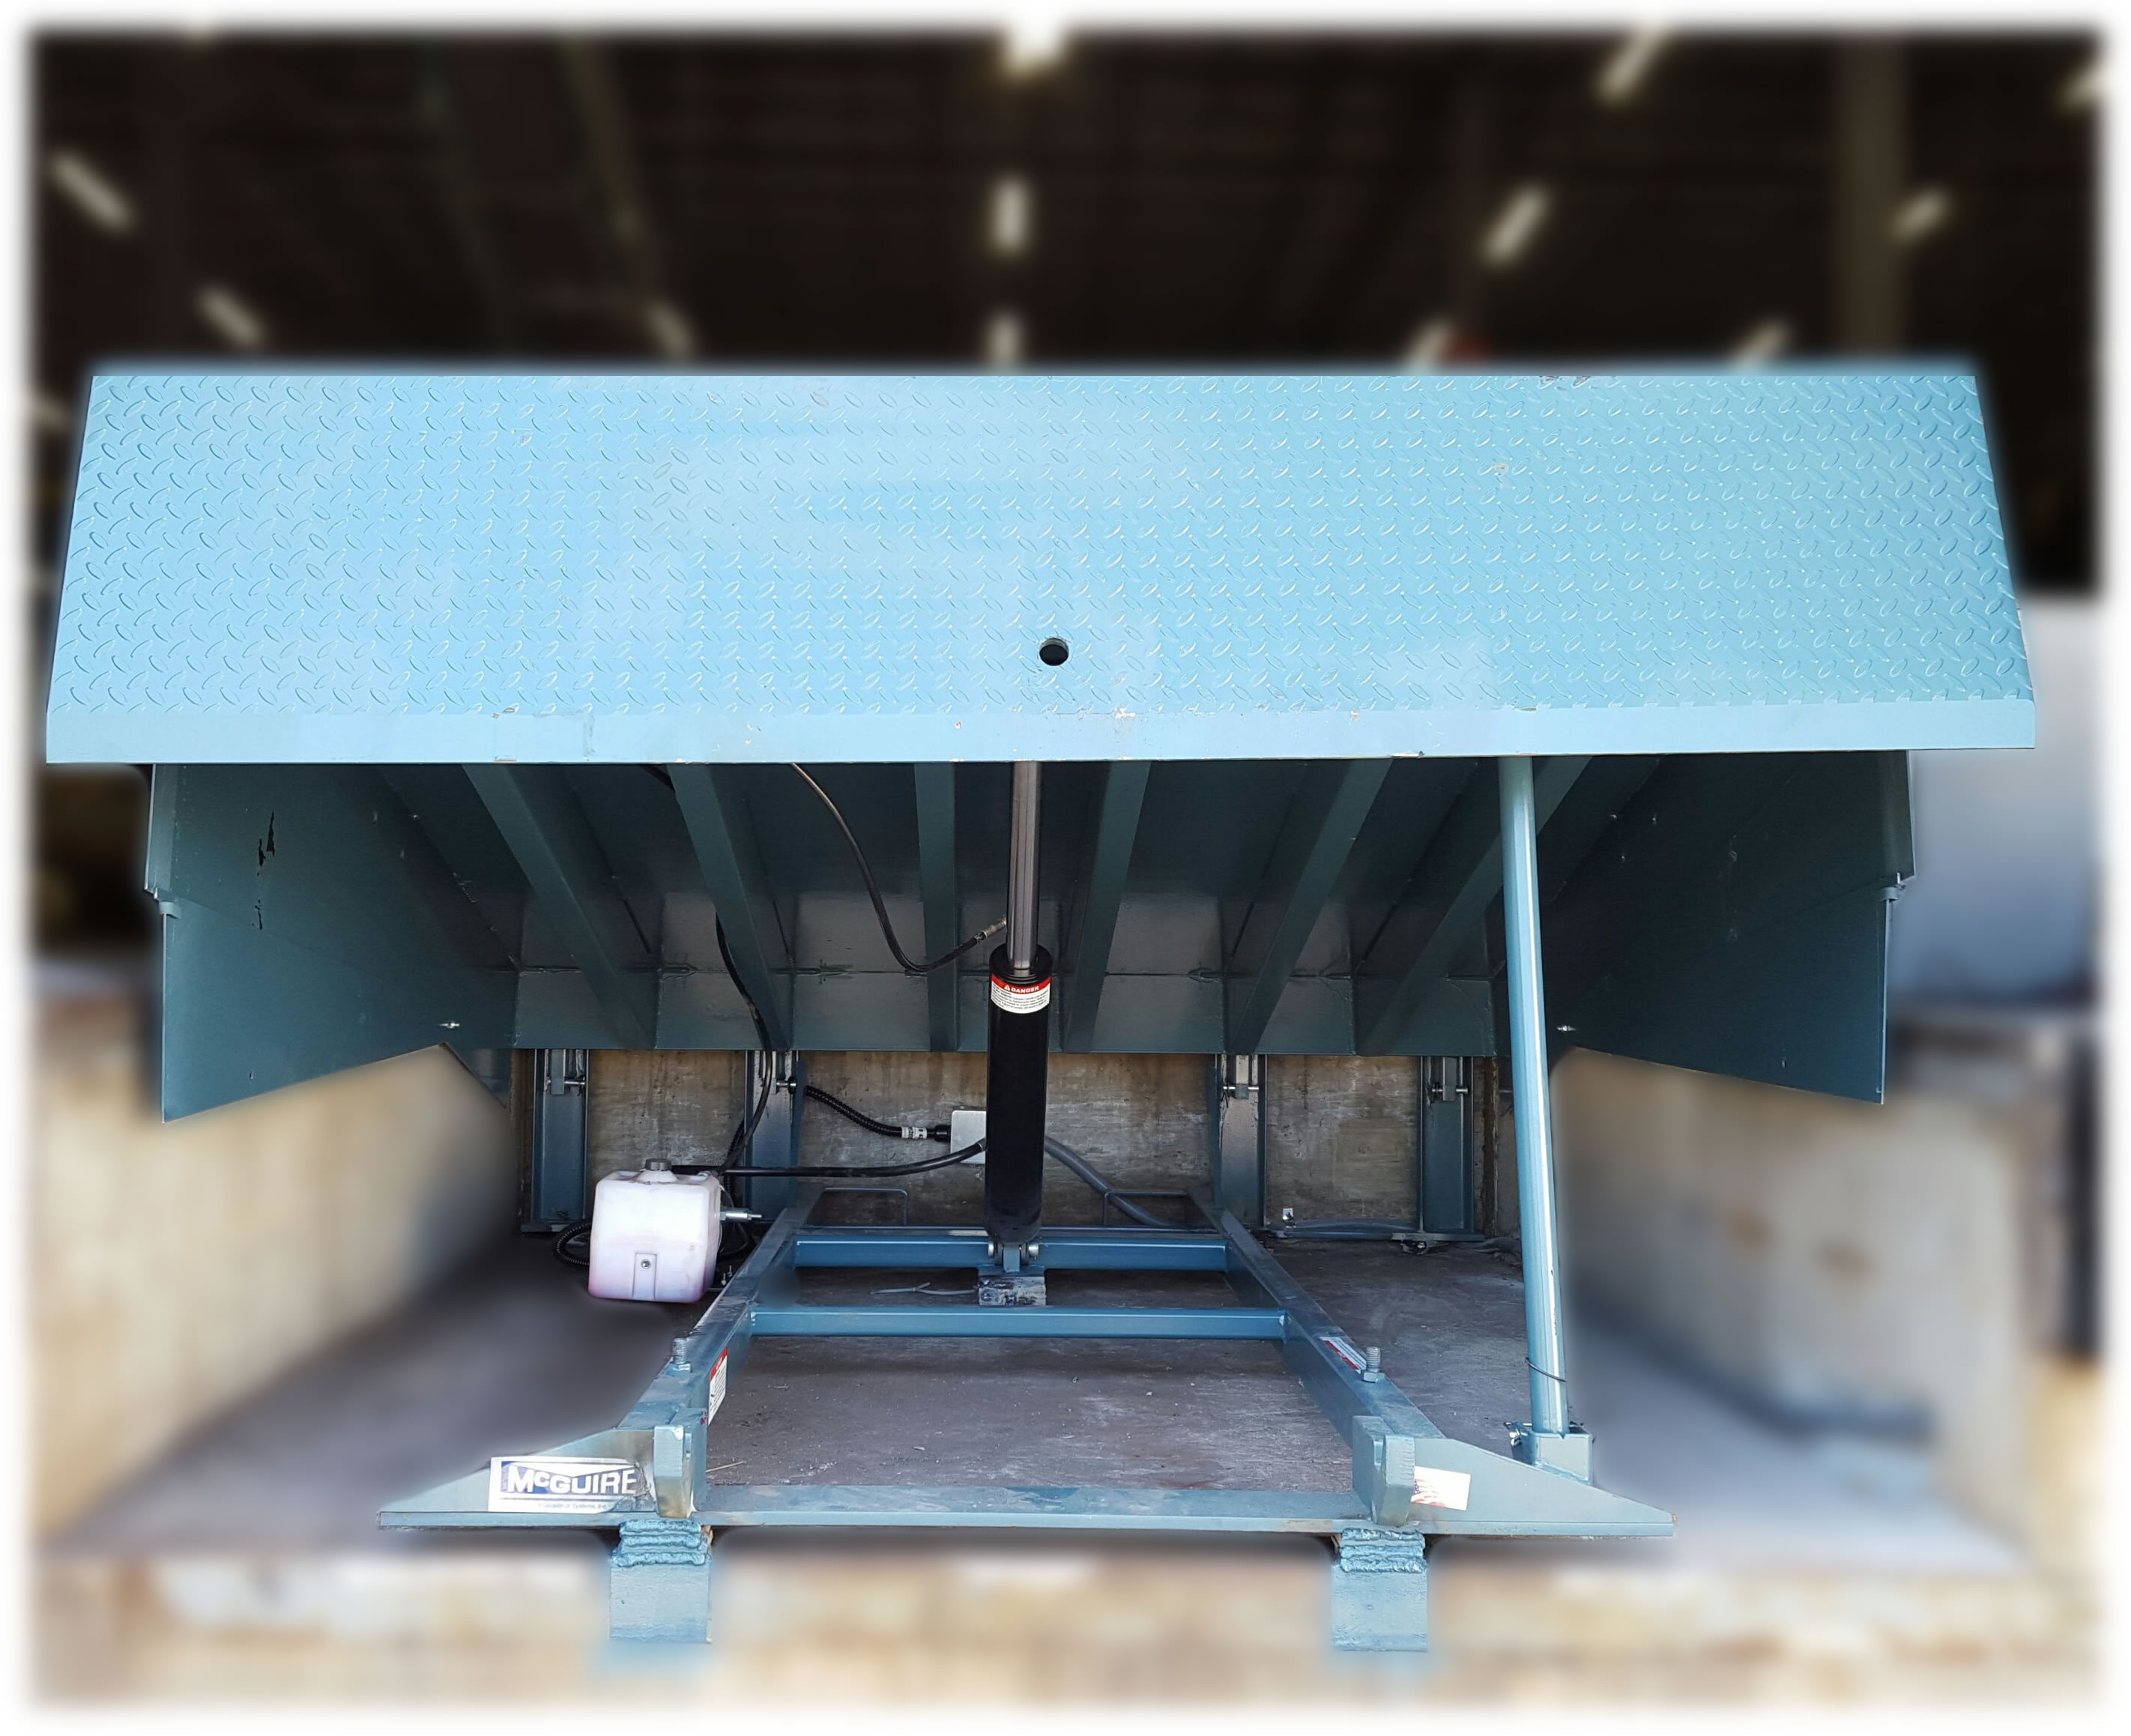 Dock Levelers, Dock Plate, Dock Bay Plate, Door Docks, Dock Levelators, Hydraulic Dock Lifts, Electric Dock Plates